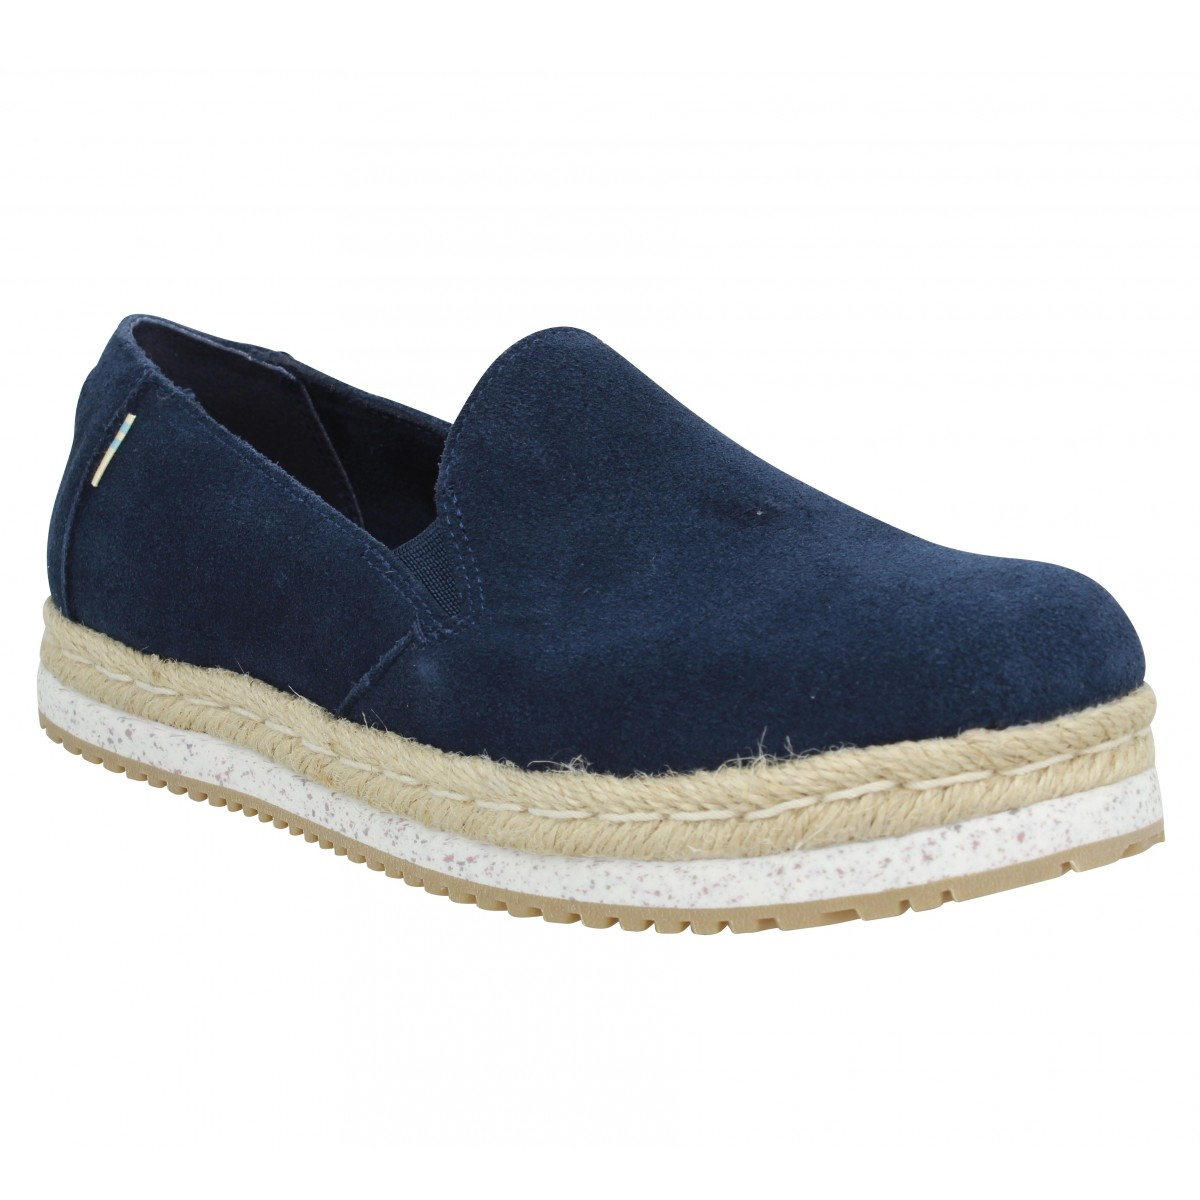 Toms Marque Palma Velours Femme-39-navy